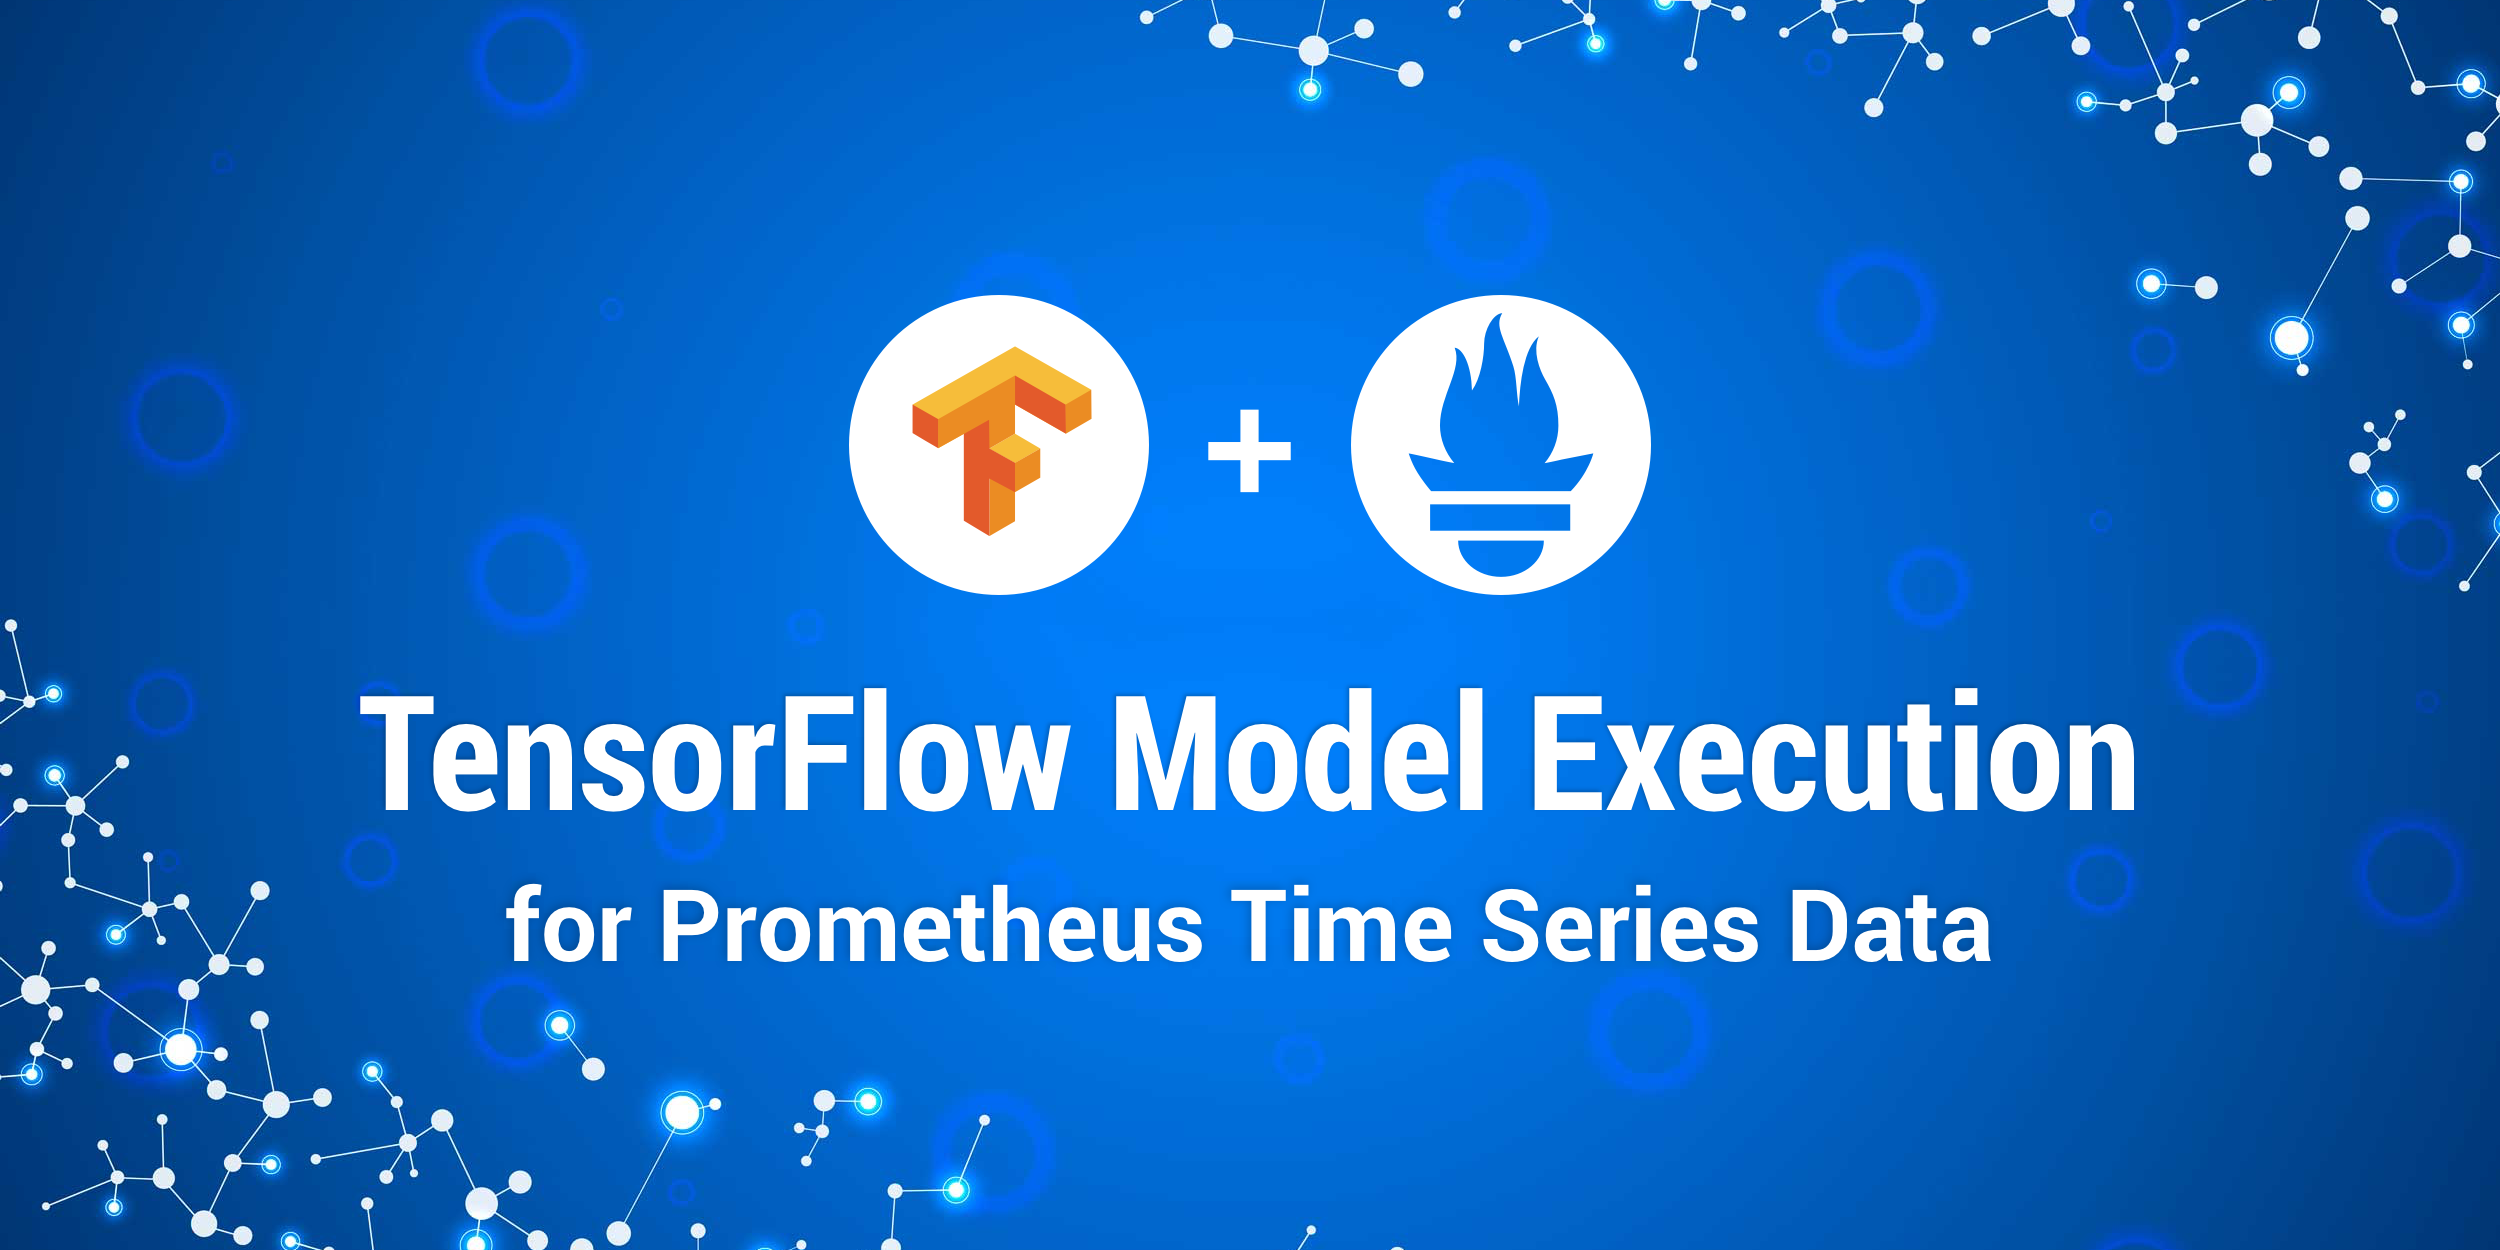 TensorFlow Model Execution for Prometheus Time Series Data